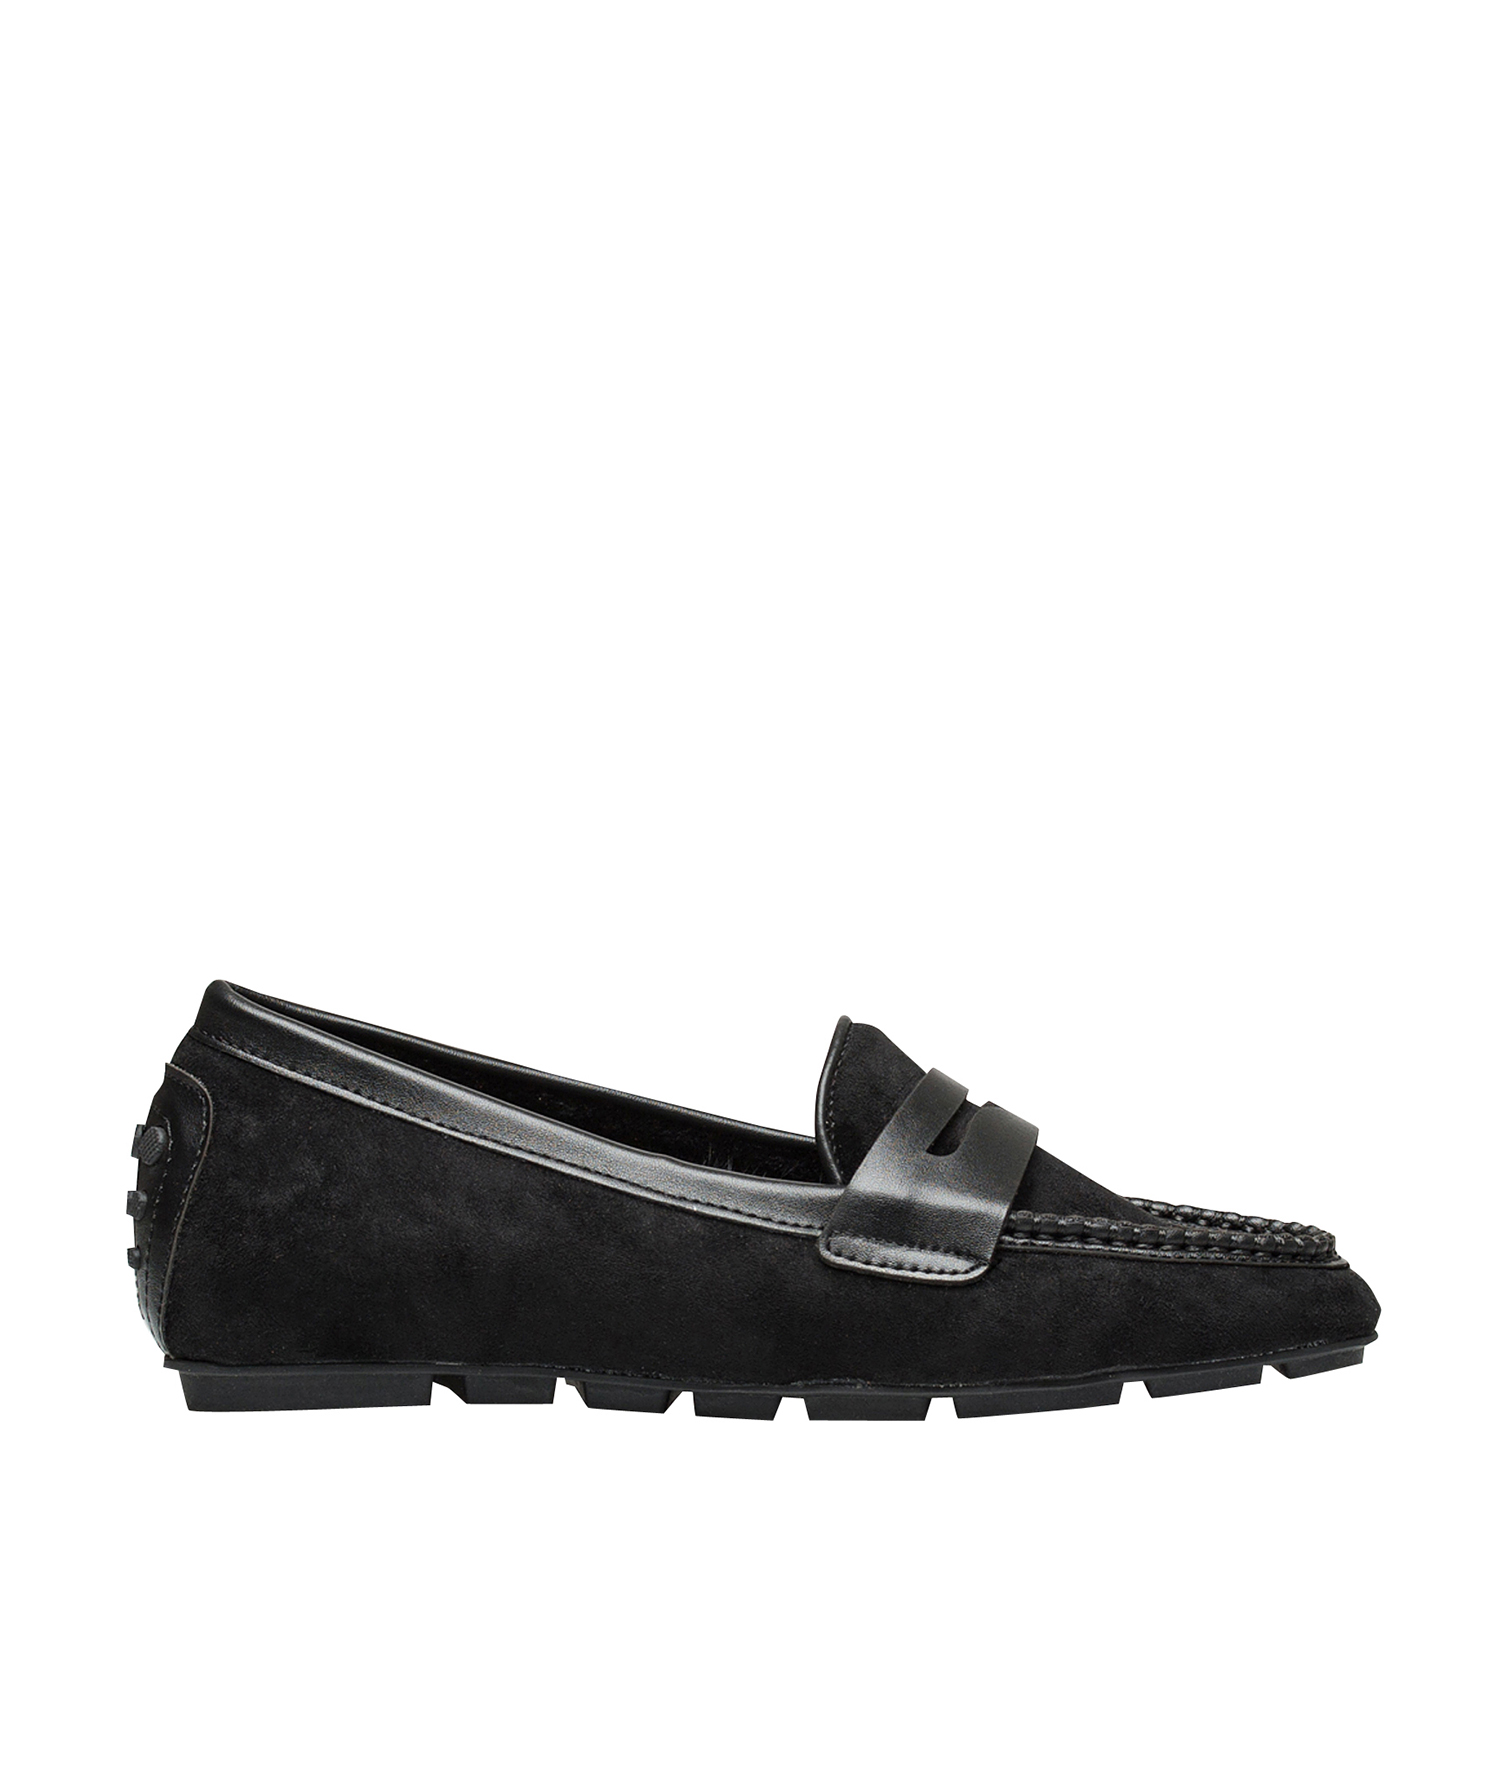 43389b390a8 AnnaKastle Womens Faux Fur Lined Driving Penny Loafers Suede Black